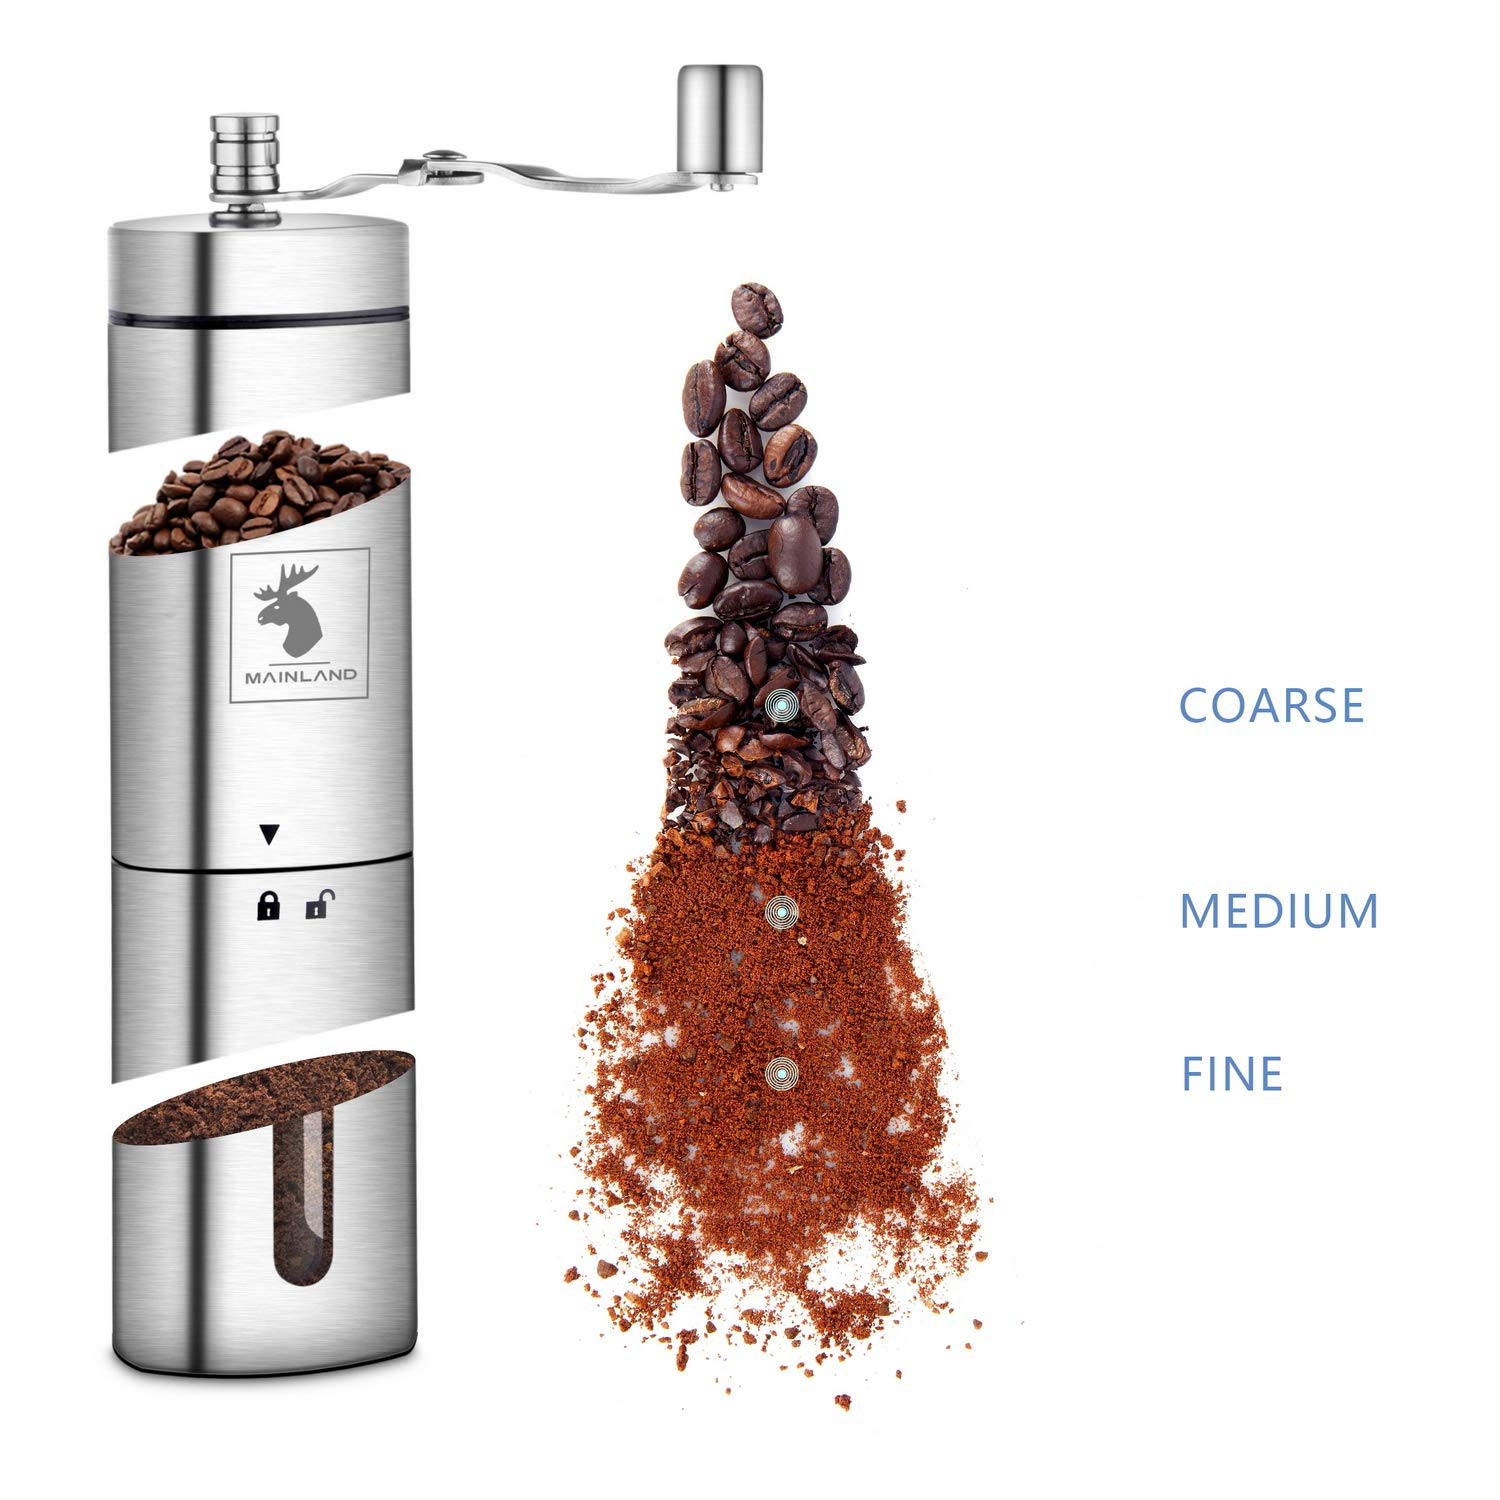 Manual Coffee Grinder by Mainland (Hand Held) Adjustable Fine, Medium, Coarse Grounds | Ceramic Burr Mill for Whole Bean Grinding | Home Kitchen, Office, Travel by Mainland (Image #5)